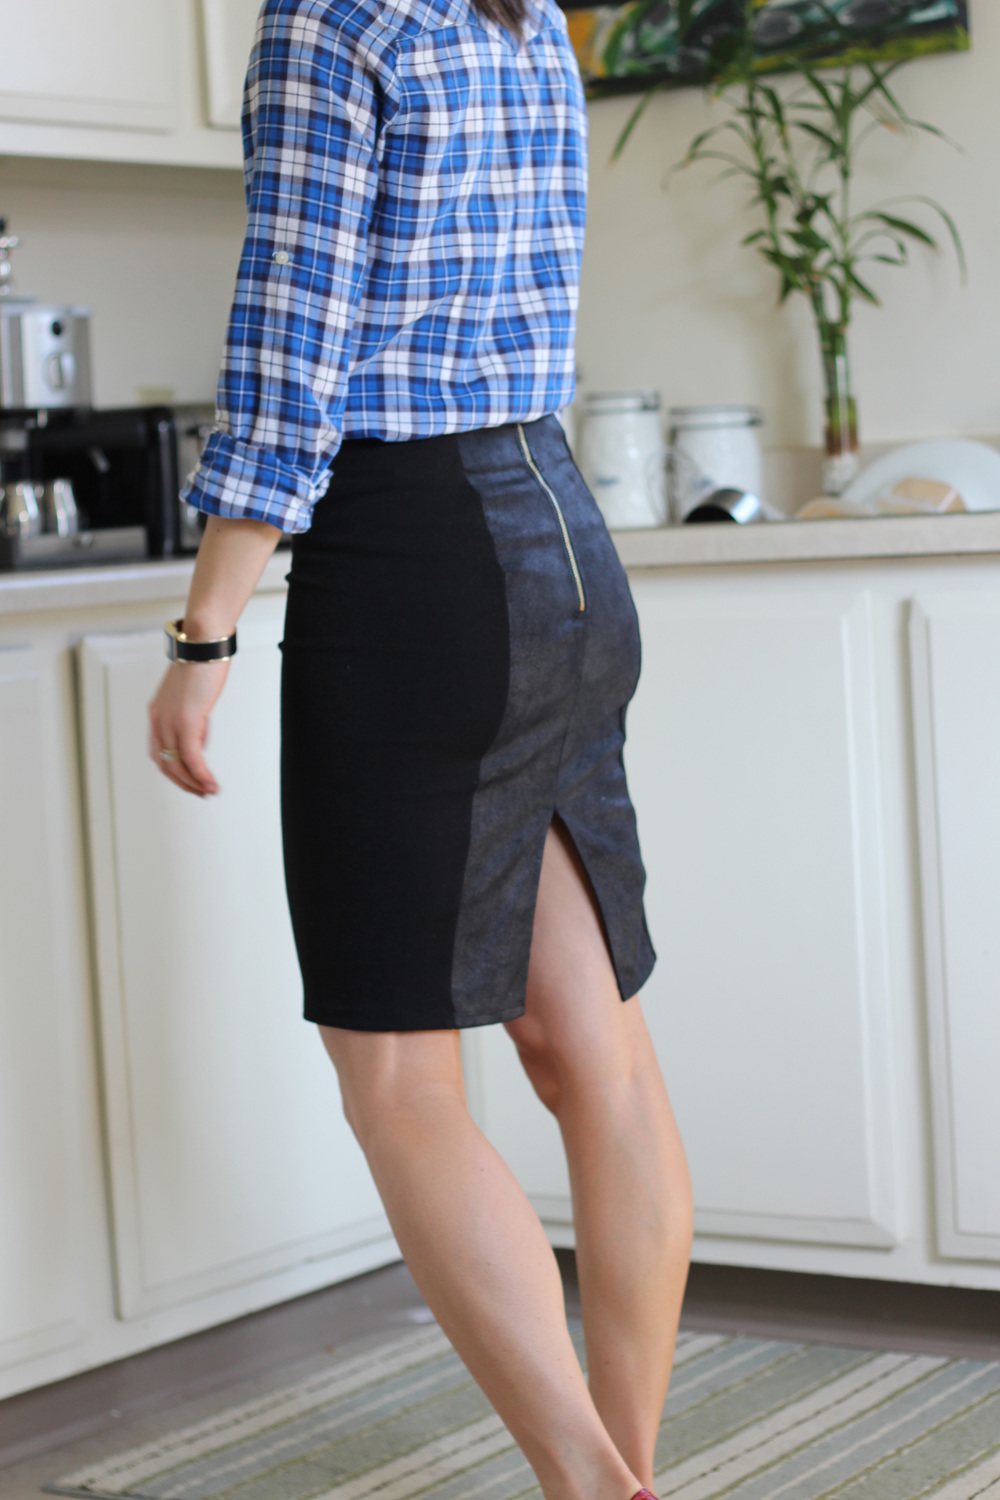 Pencil skirts & plaid.4